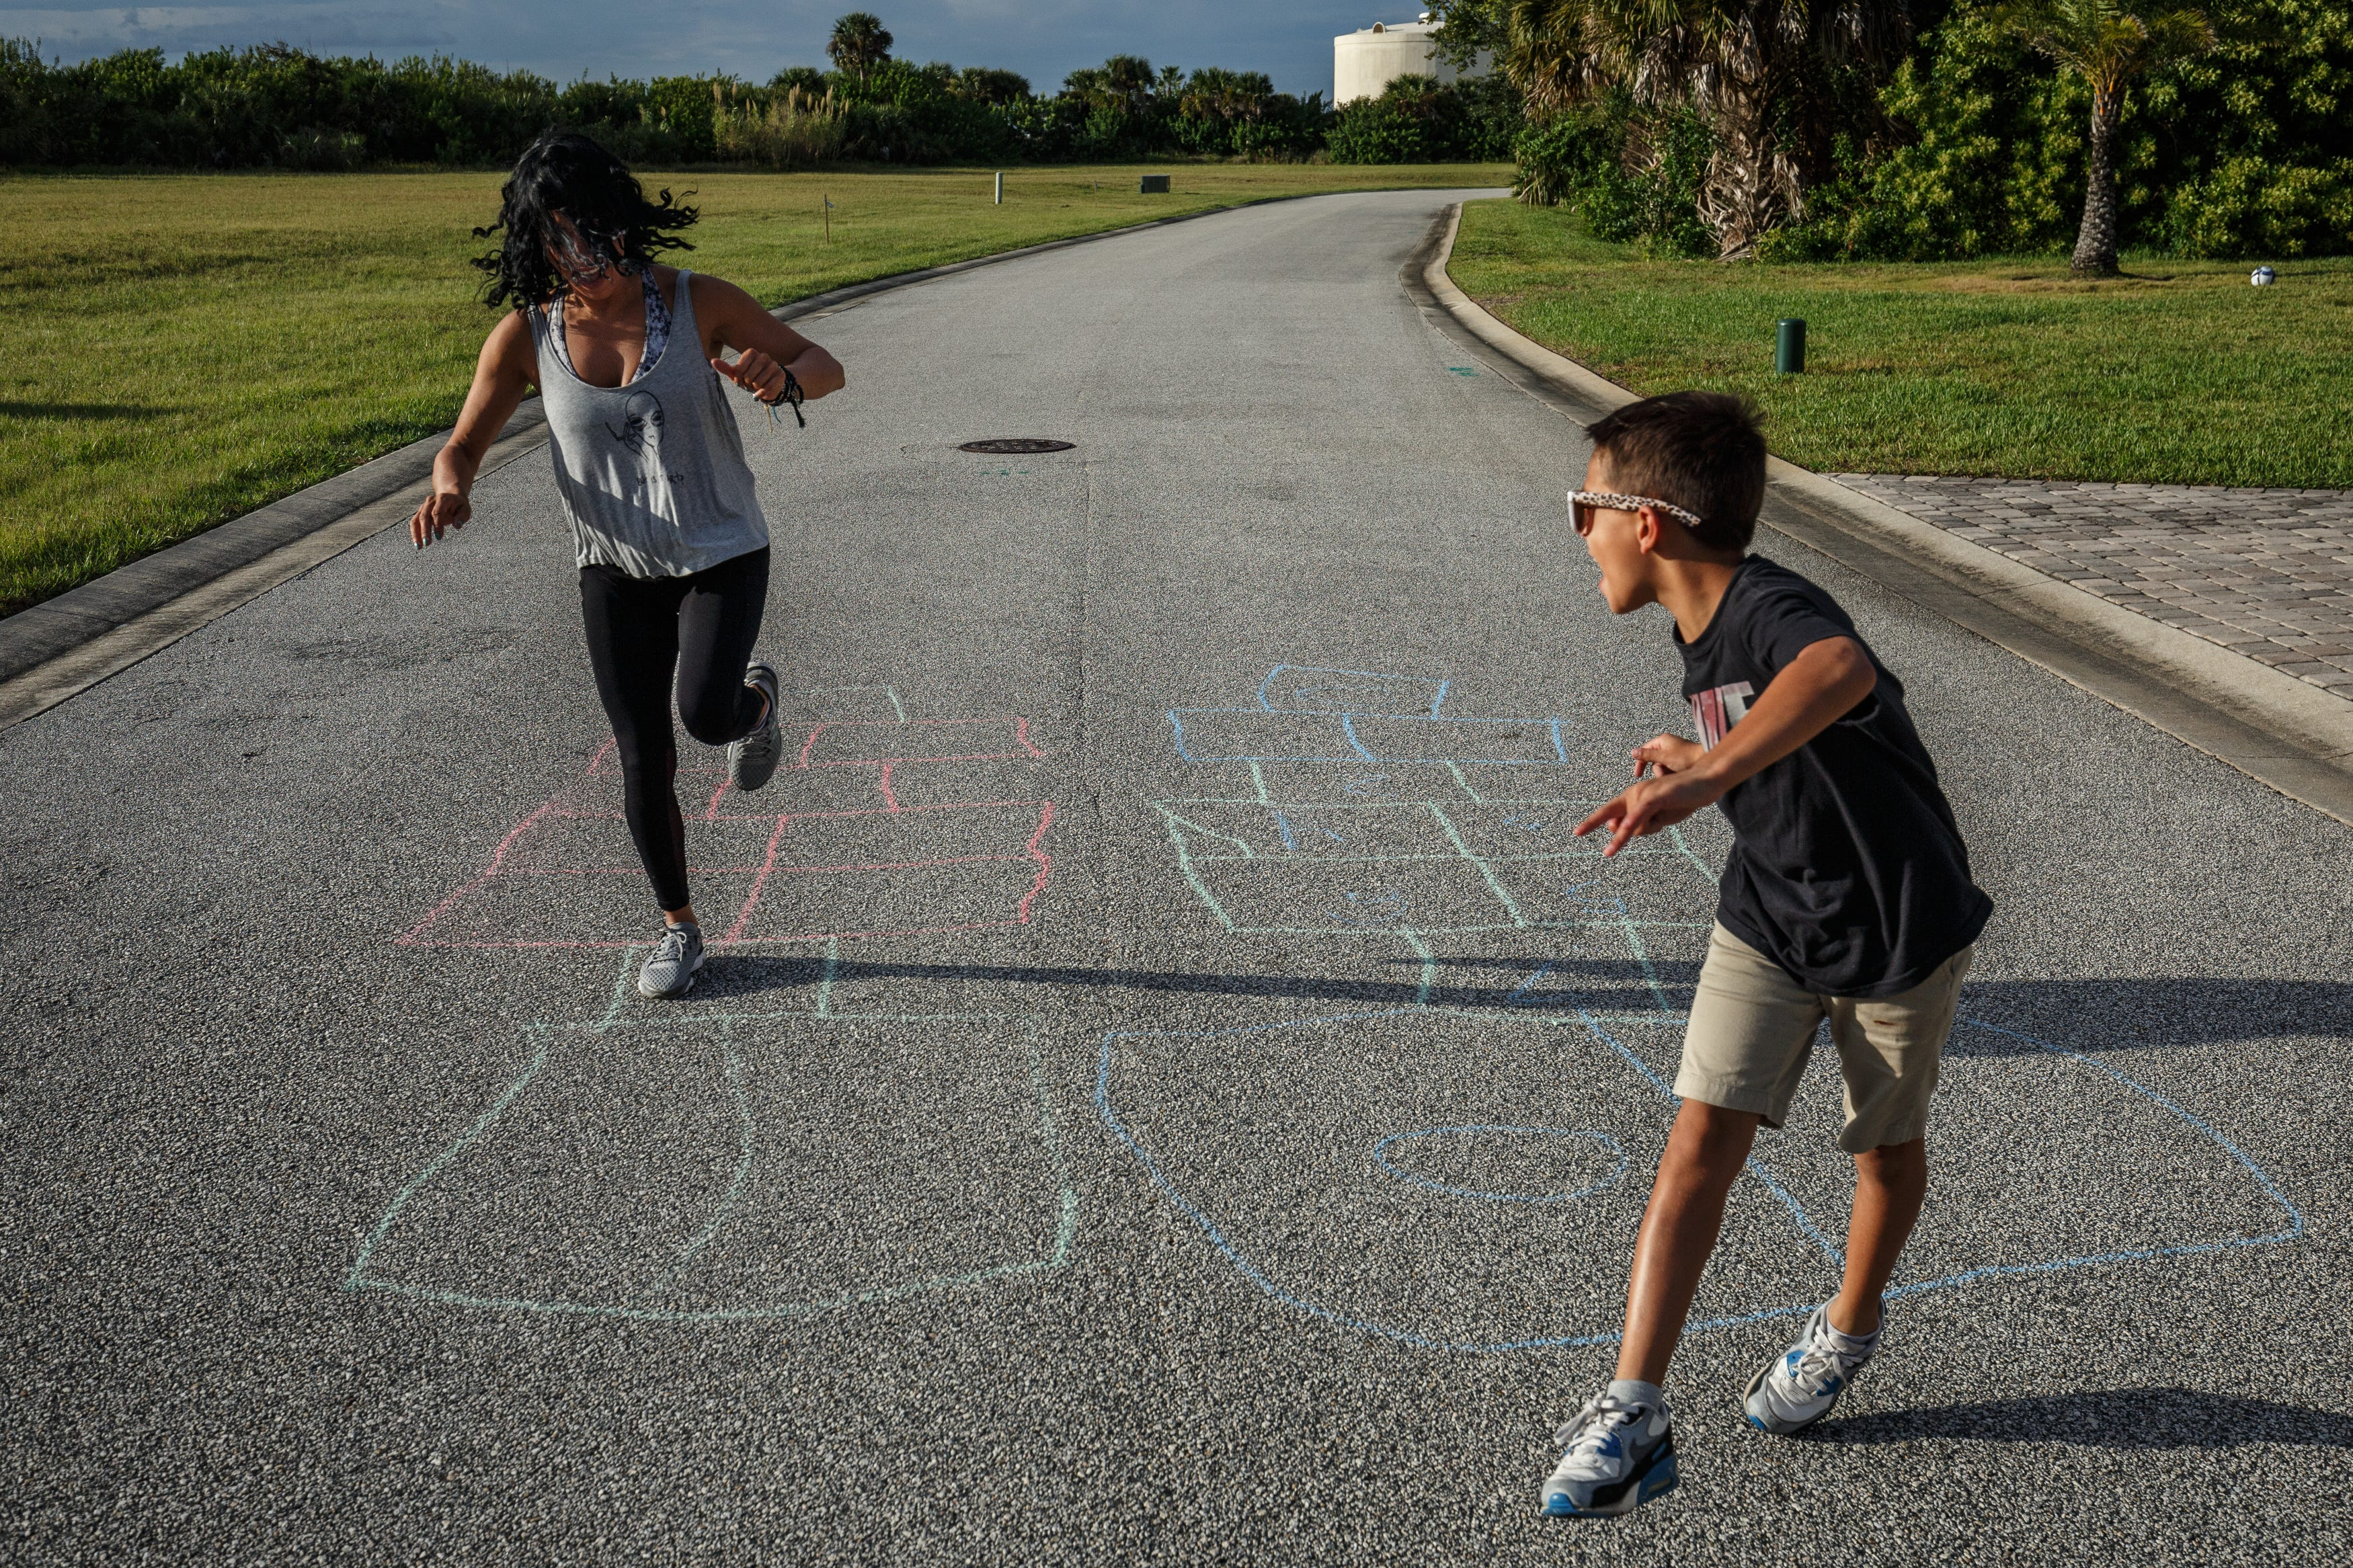 Lena and her son, William, play hopscotch.